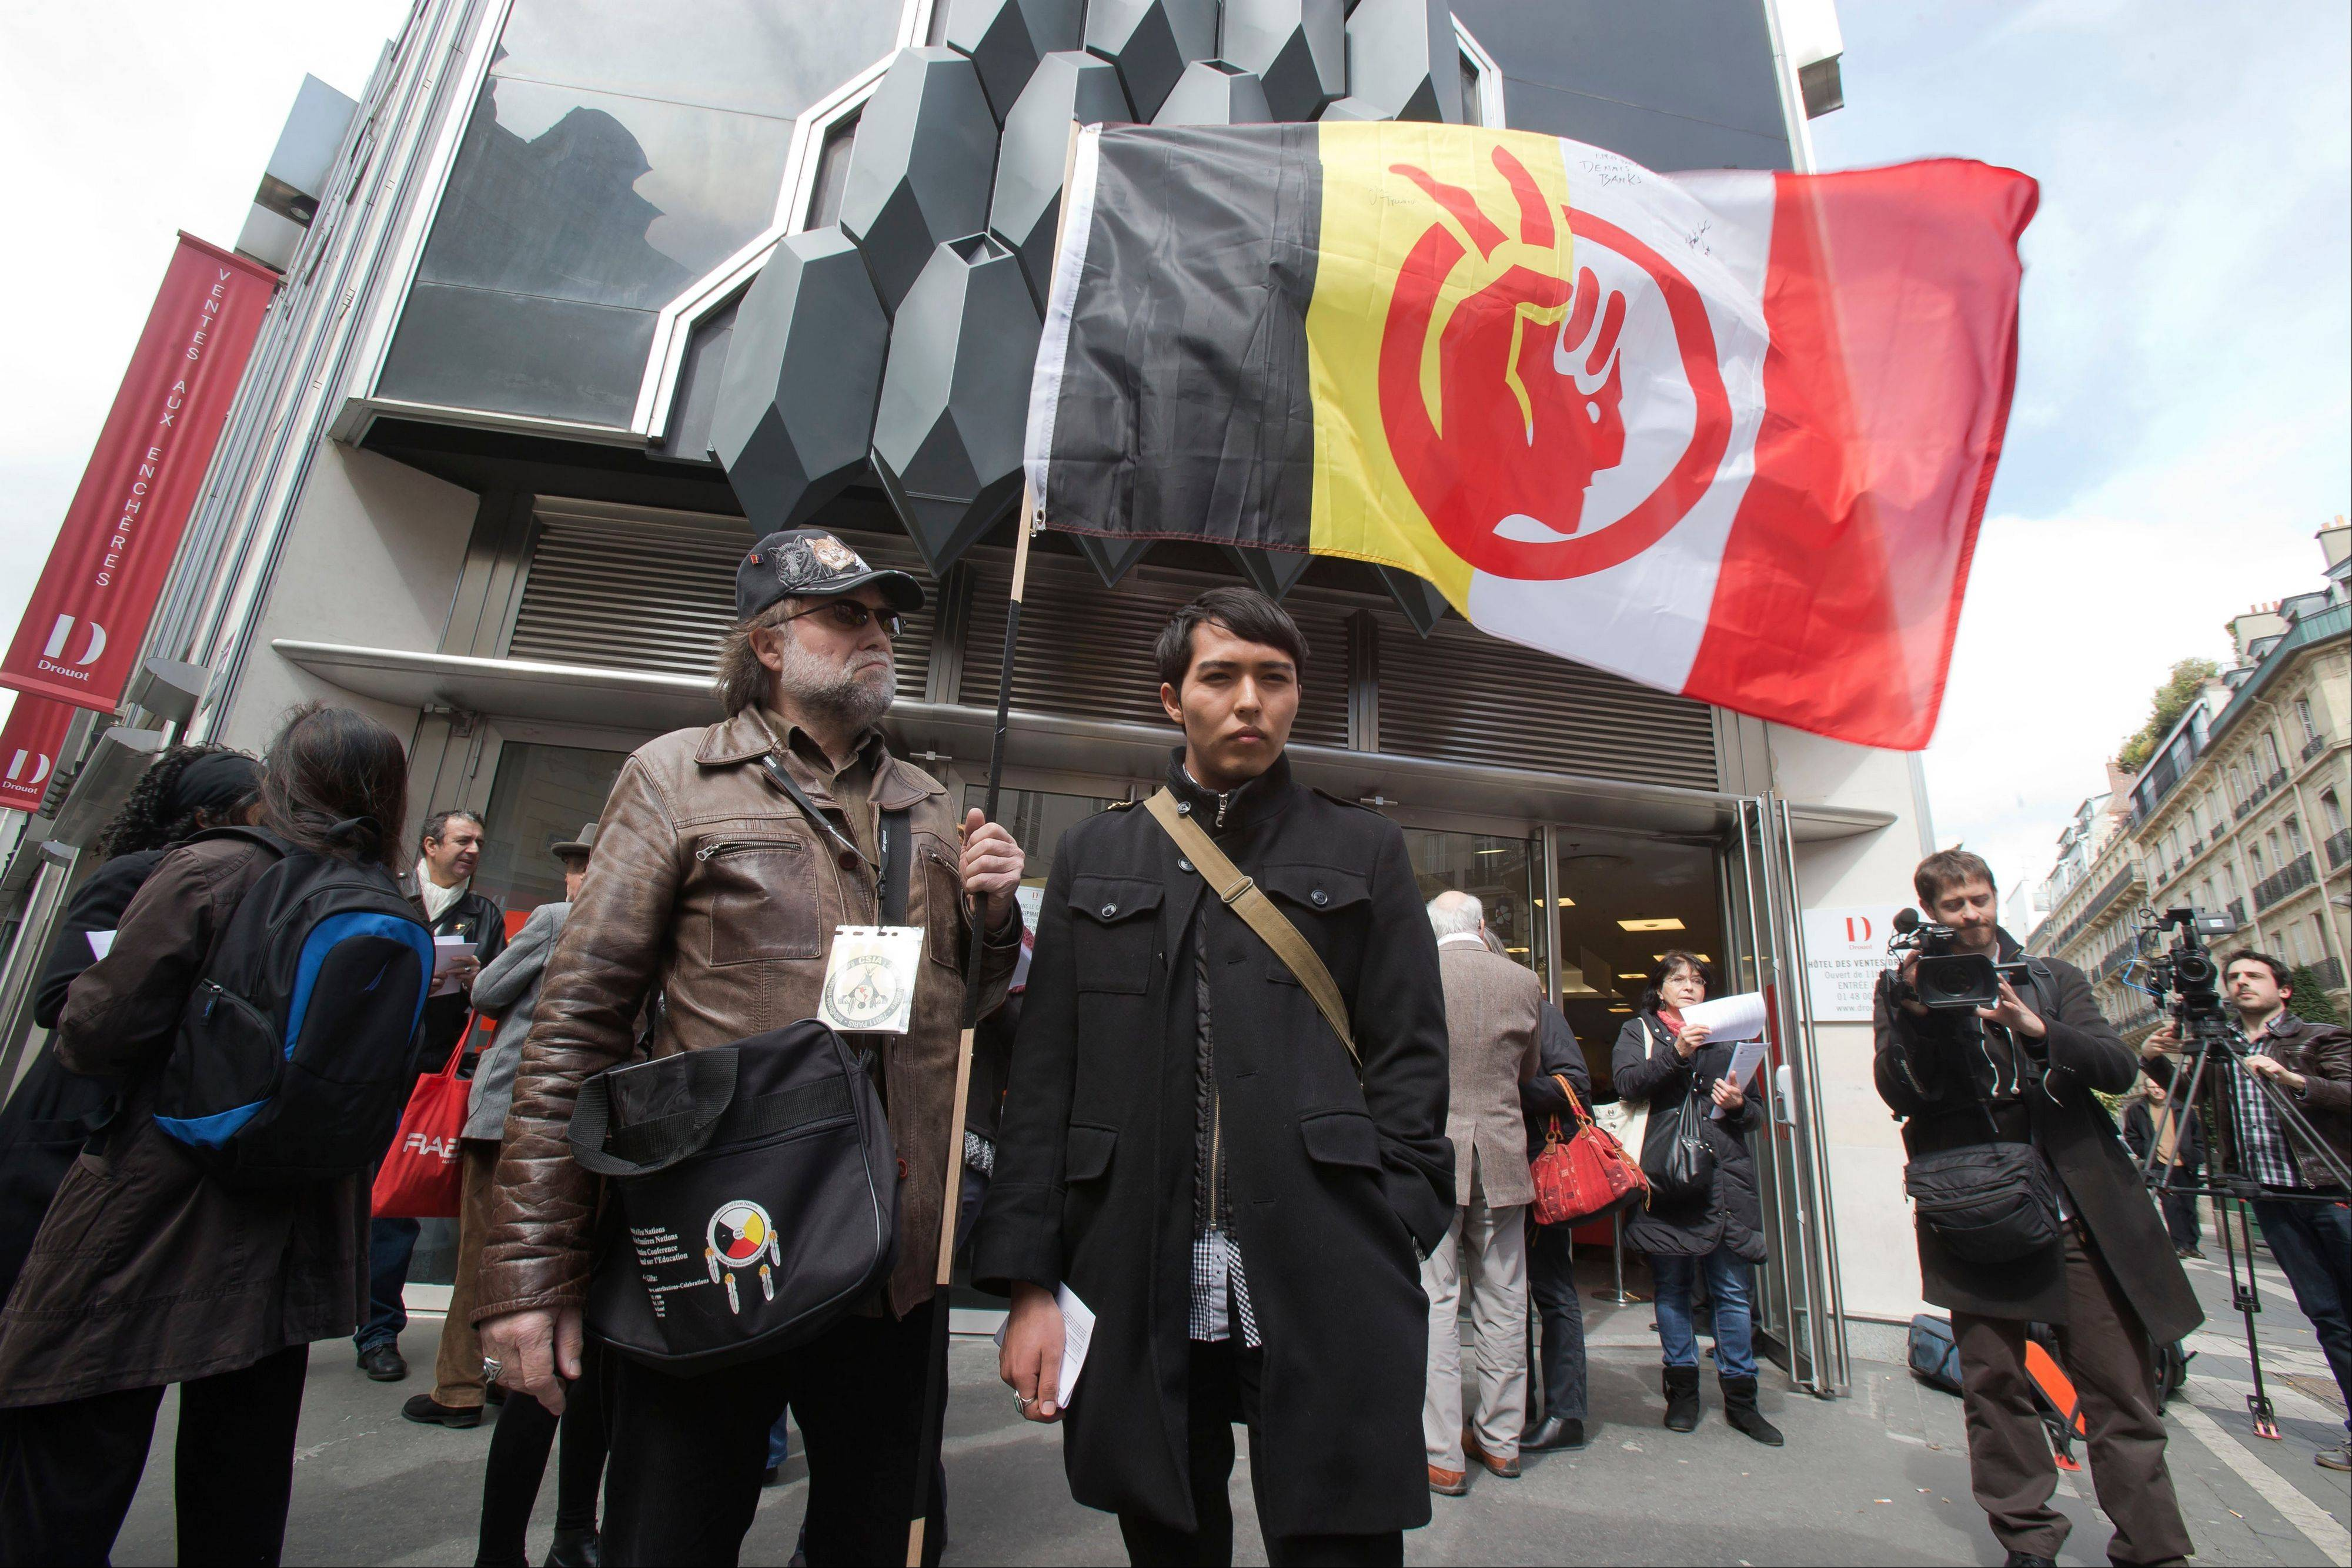 A French supporter of the Indian cause, who refused to give his name, left, holds a flag of the American Indian Movement and an American exchange student, member of the Arizona's Hopi tribe, Bo Lomahquahu, right, stand outside of the Druout's auction house to protest the auction of Native American Hopi tribe masks in Paris, Friday, April 12, 2013. A contested auction of dozens of Native American tribal masks went ahead Friday afternoon following a Paris court ruling, in spite of appeals for a delay by the Hopi tribe, its supporters including actor Robert Redford, and the U.S. government.